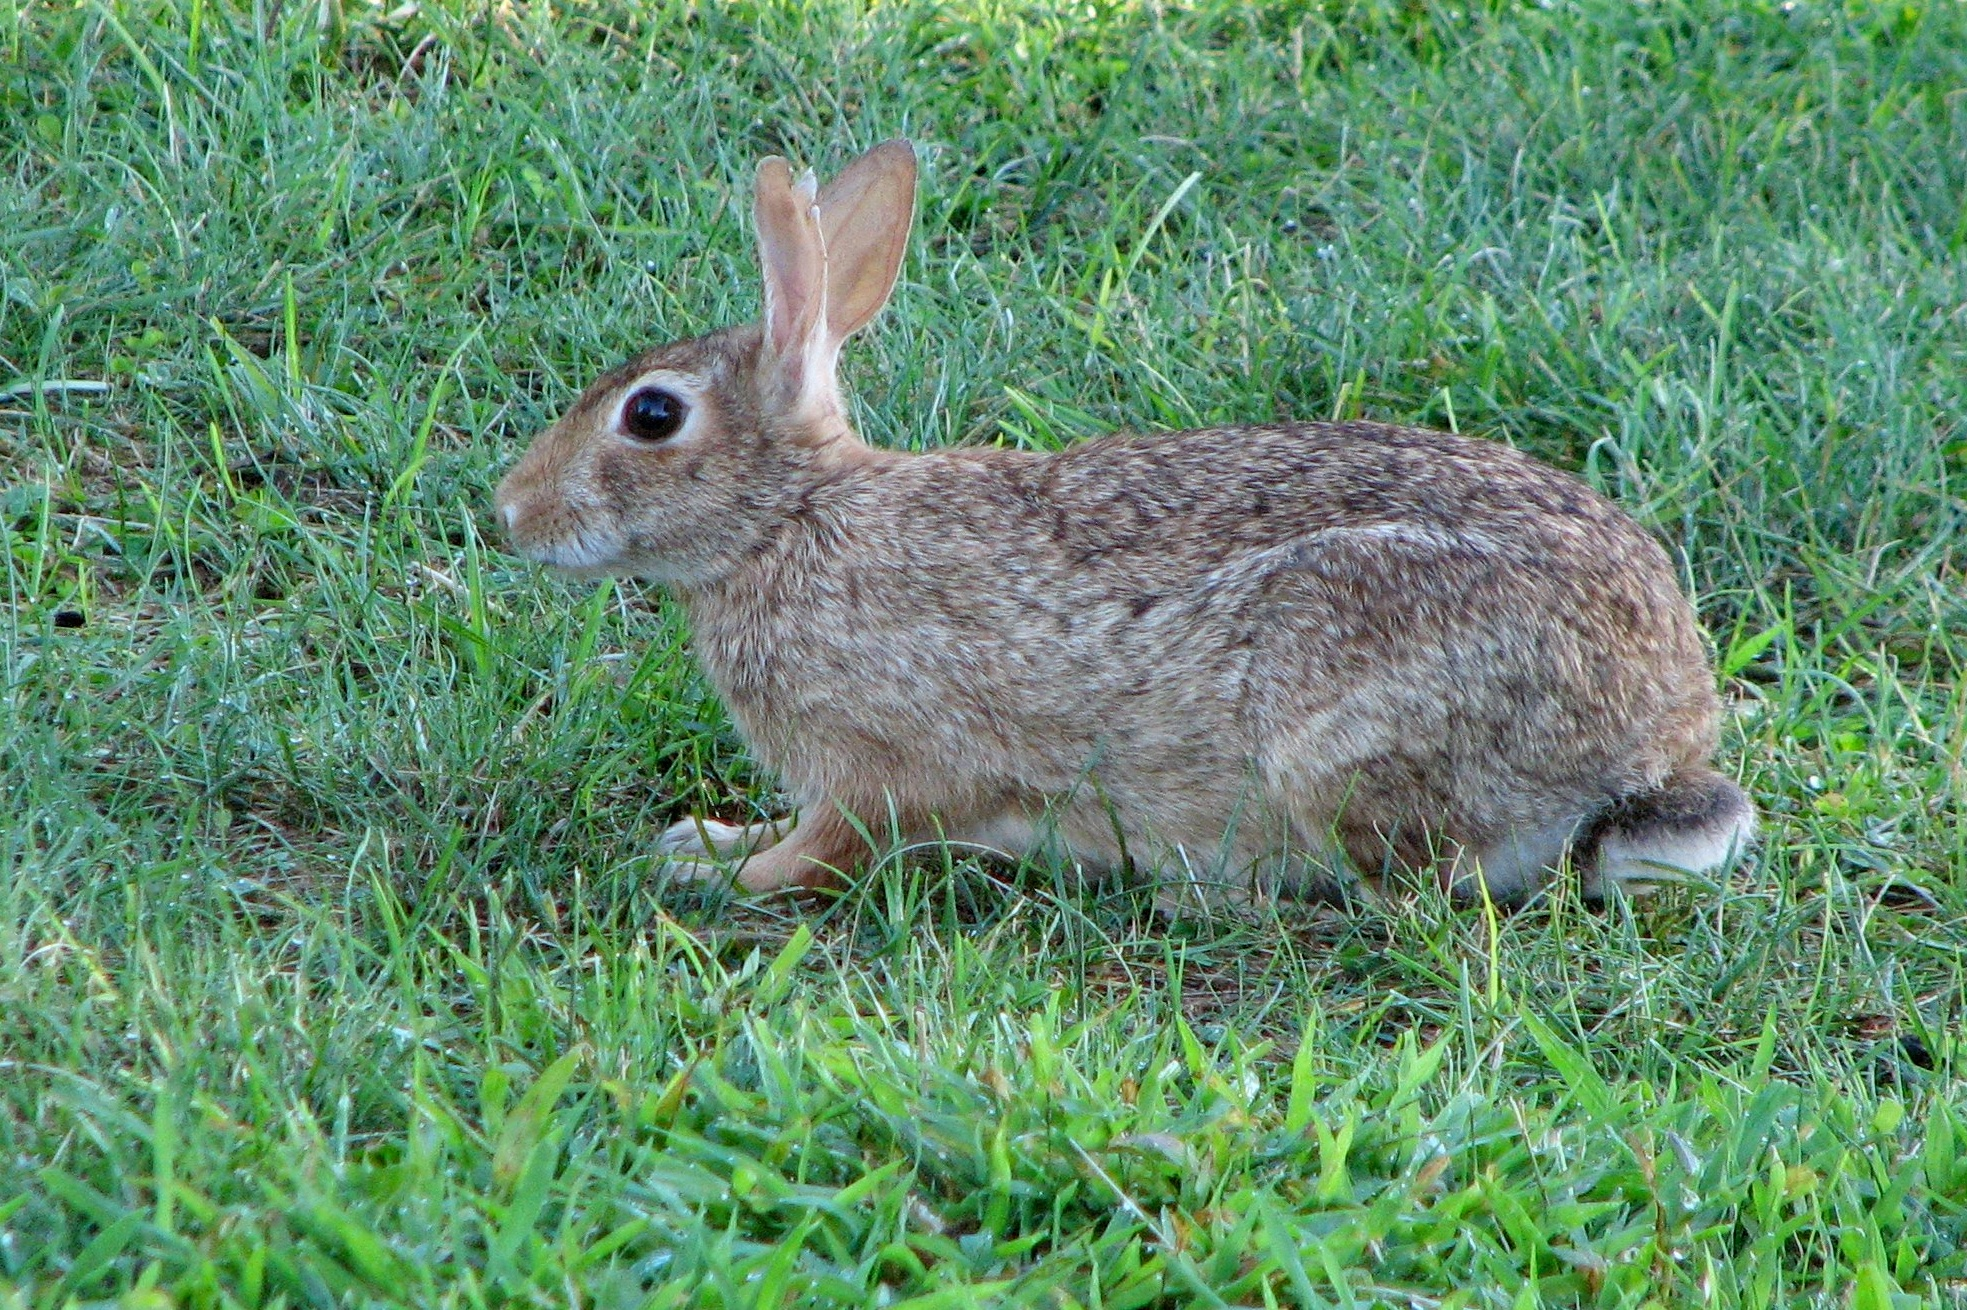 cottontail author lucke charlie held still for t